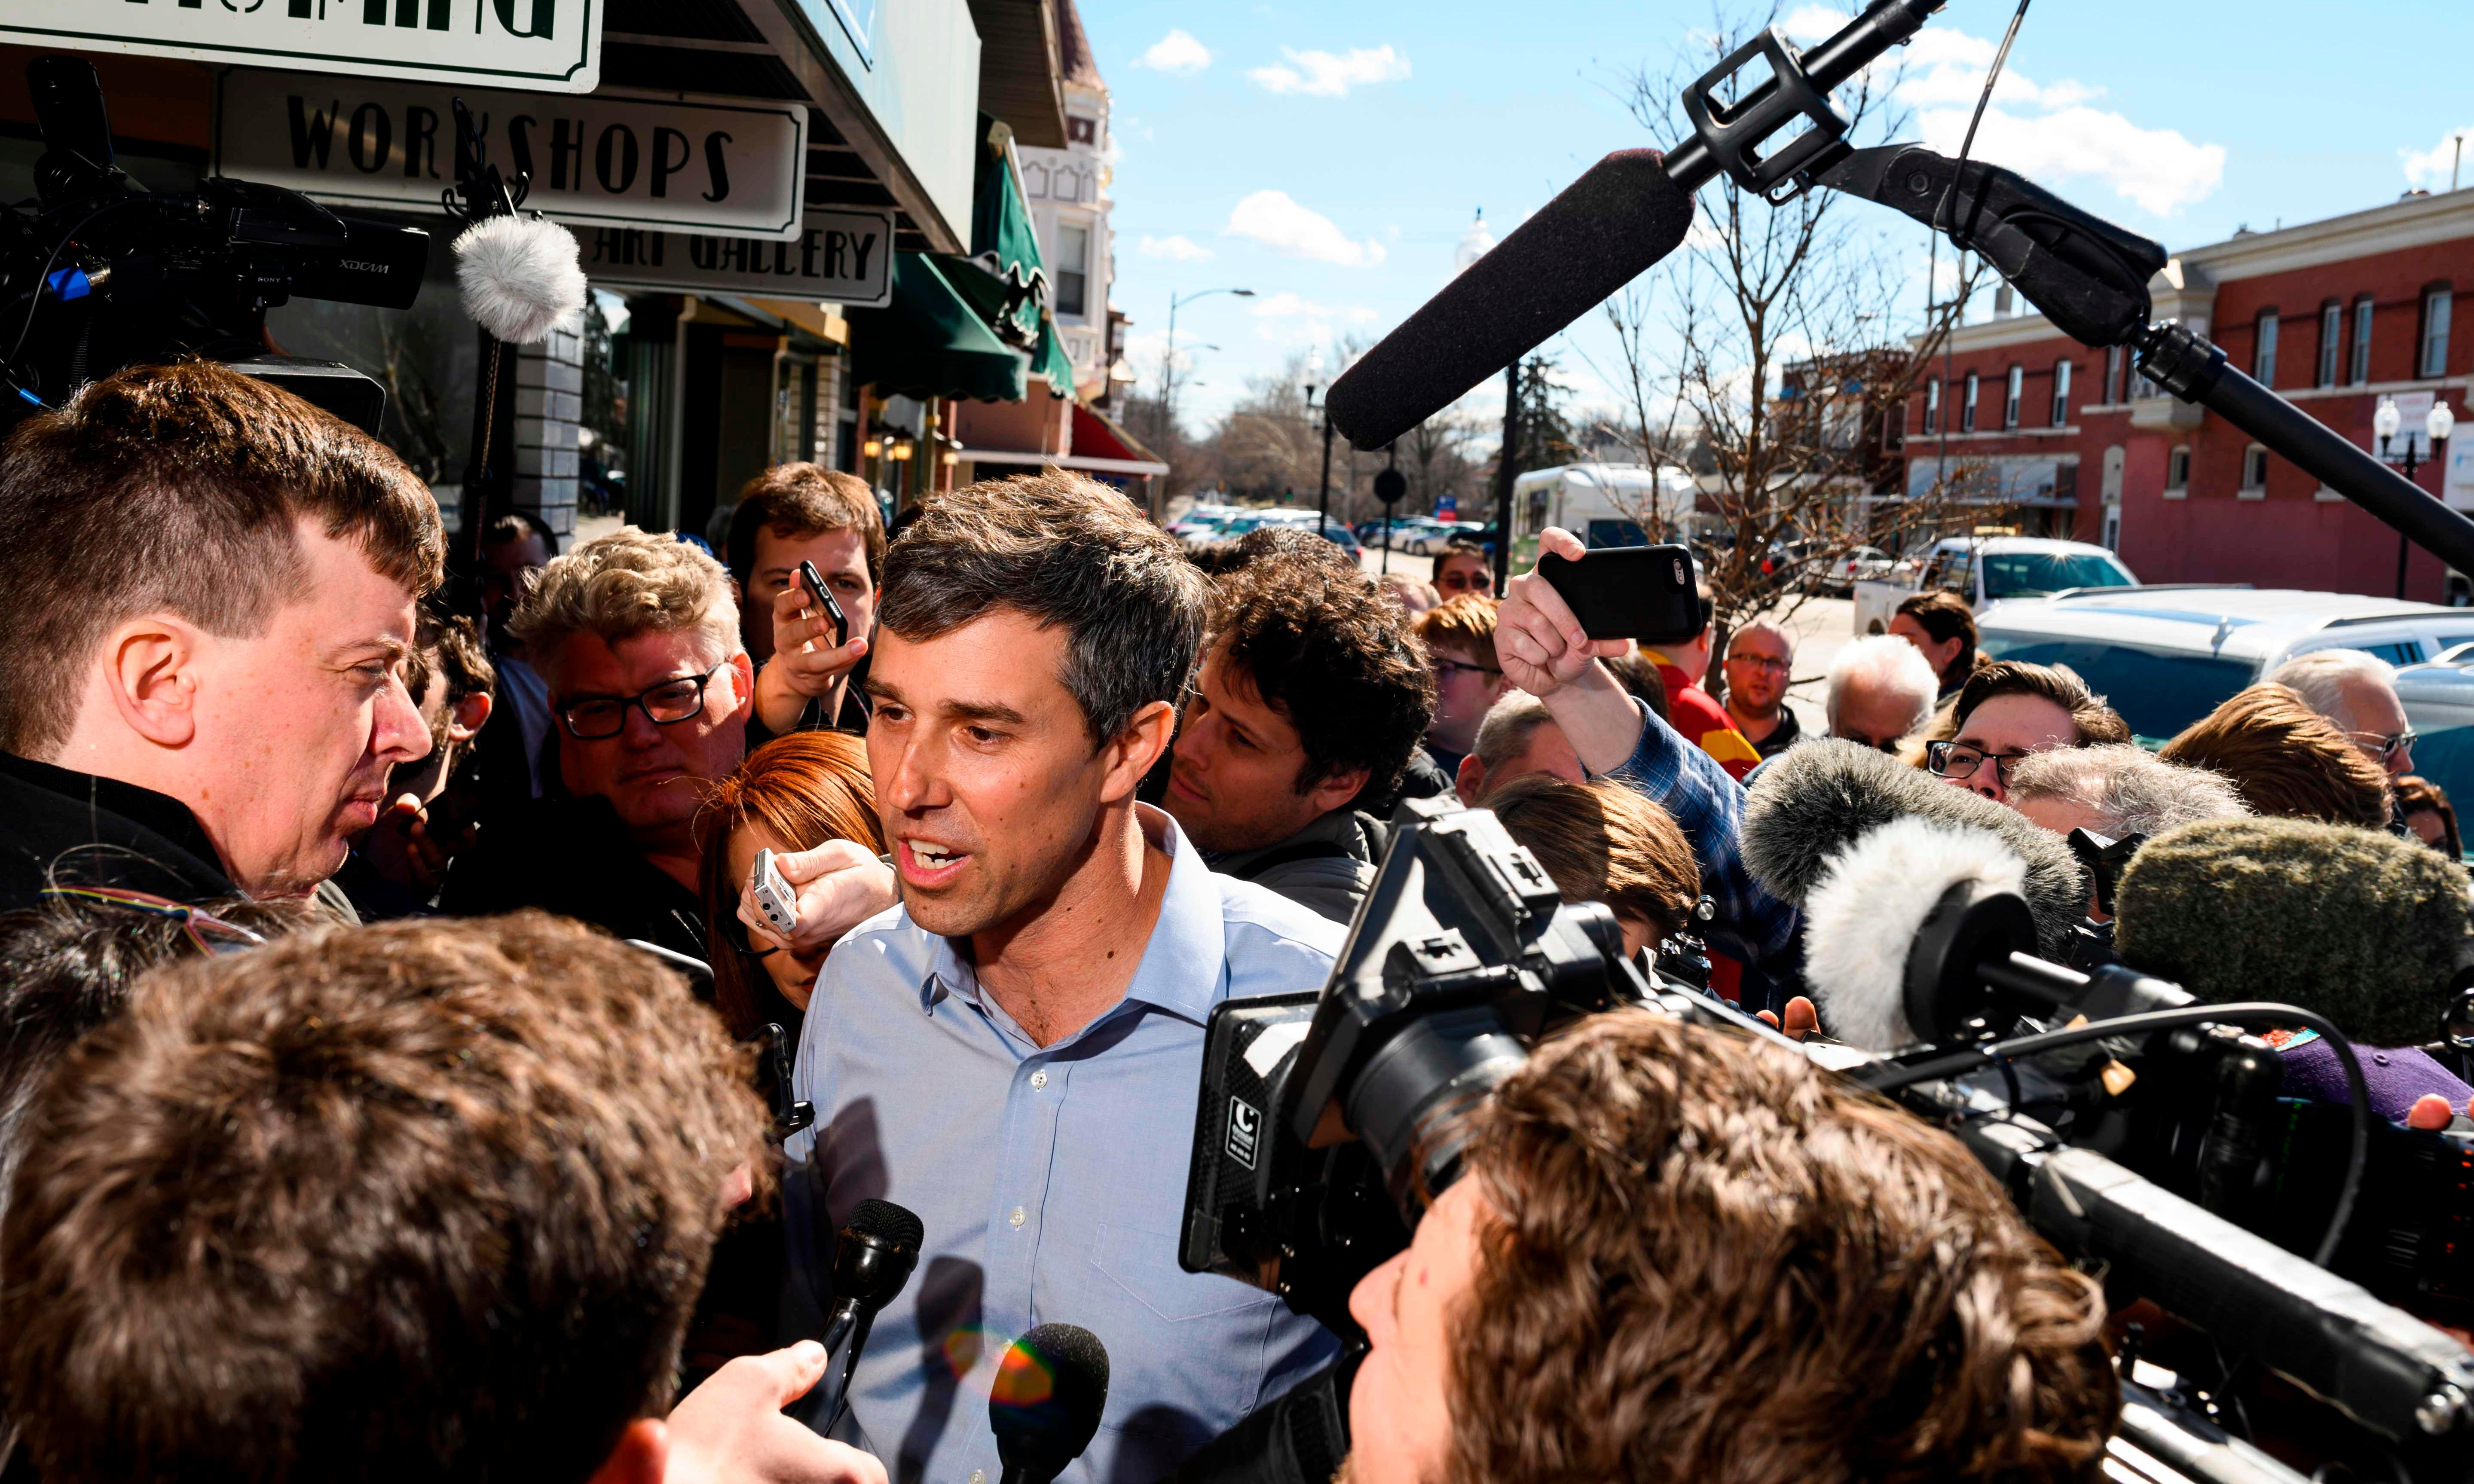 Beto O'Rourke raised $6.1m in a day – proof there's too much money in US politics